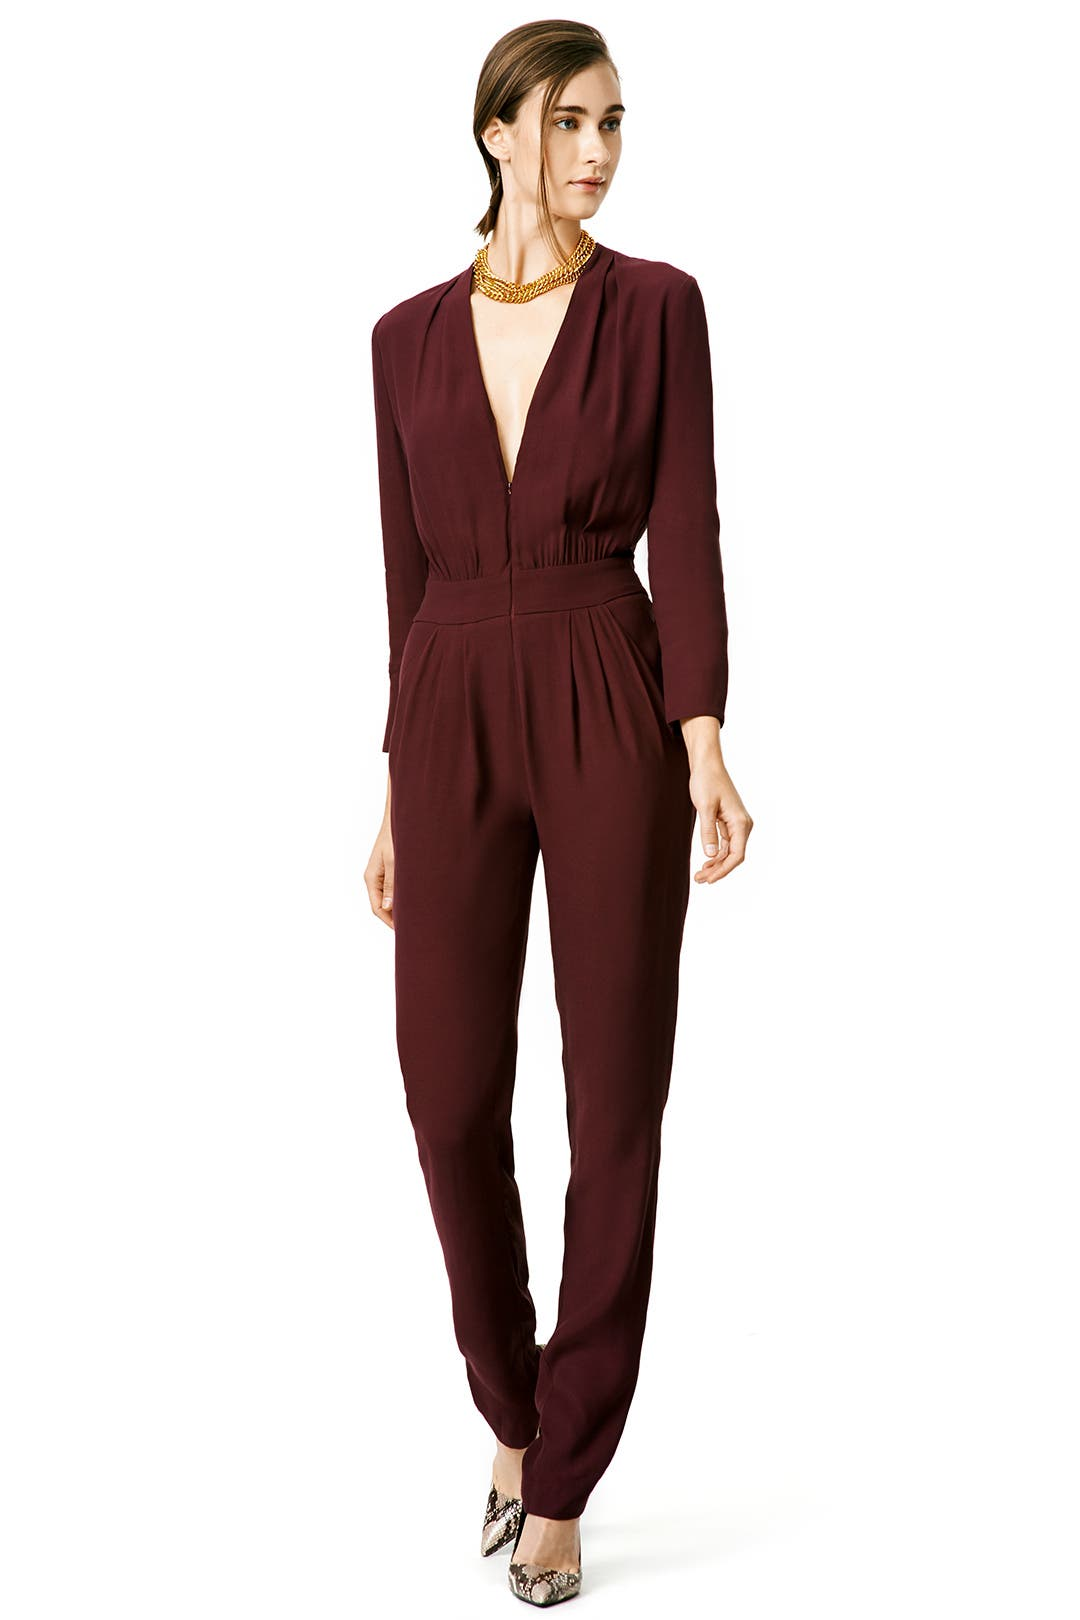 Kate Jumpsuit By Twelfth Street By Cynthia Vincent For 55